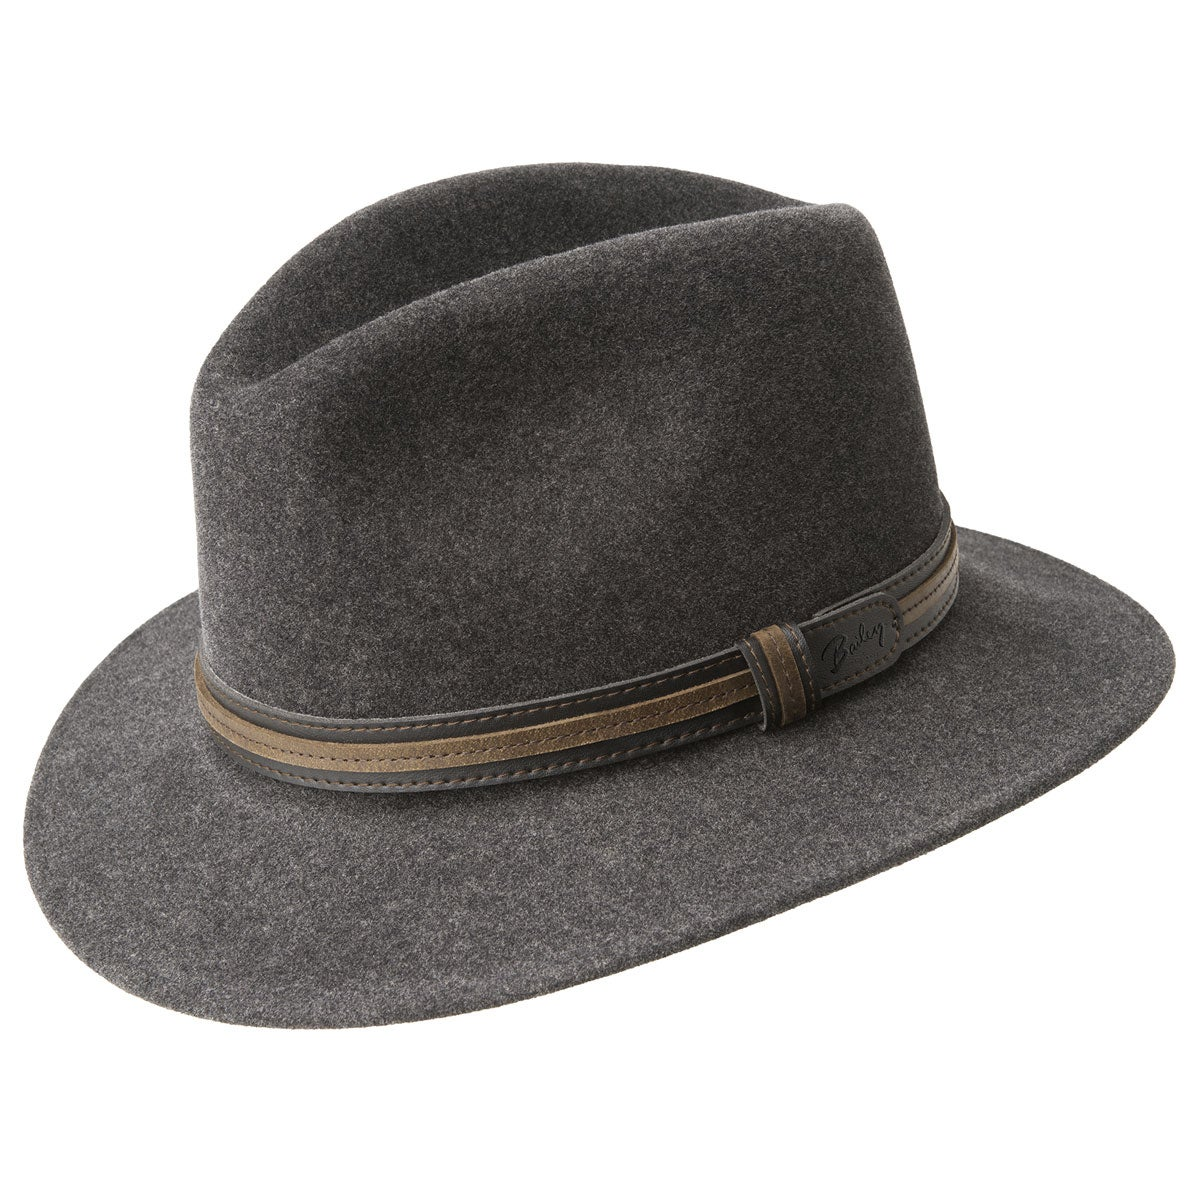 Bailey of Hollywood Brandt Fedora in Black Mix